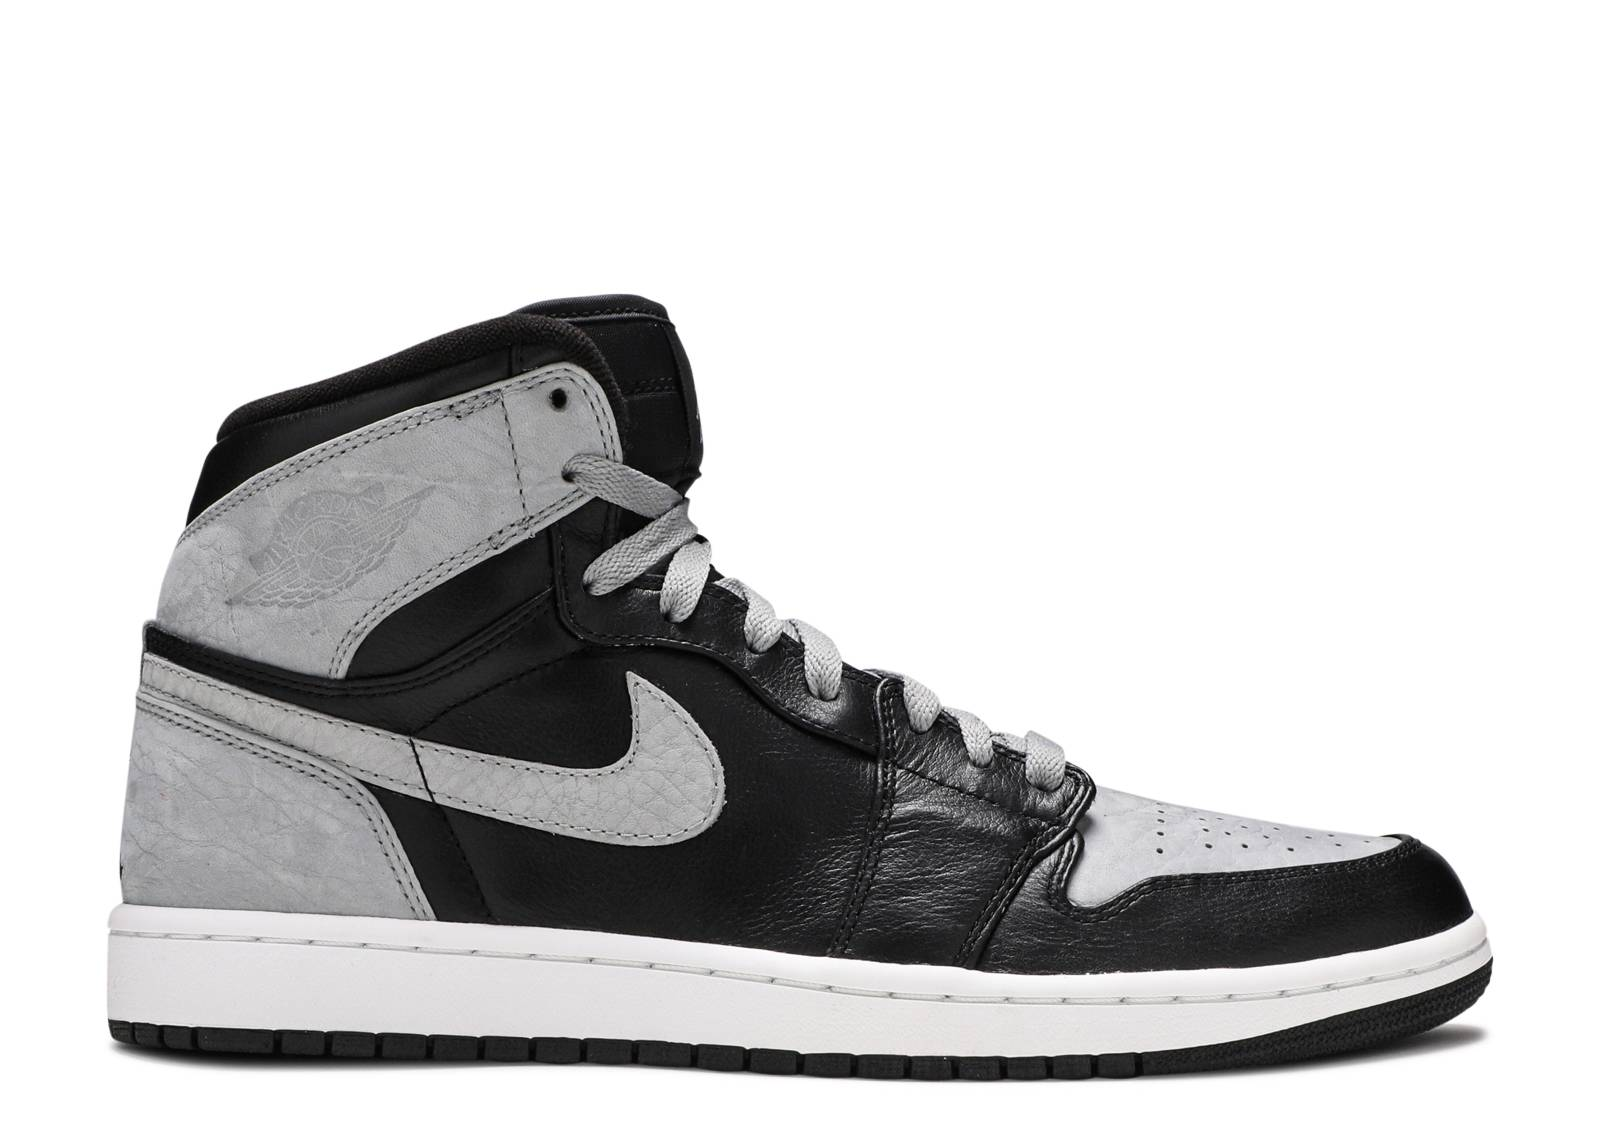 low priced efbfc 3e261 air jordan 1 retro high